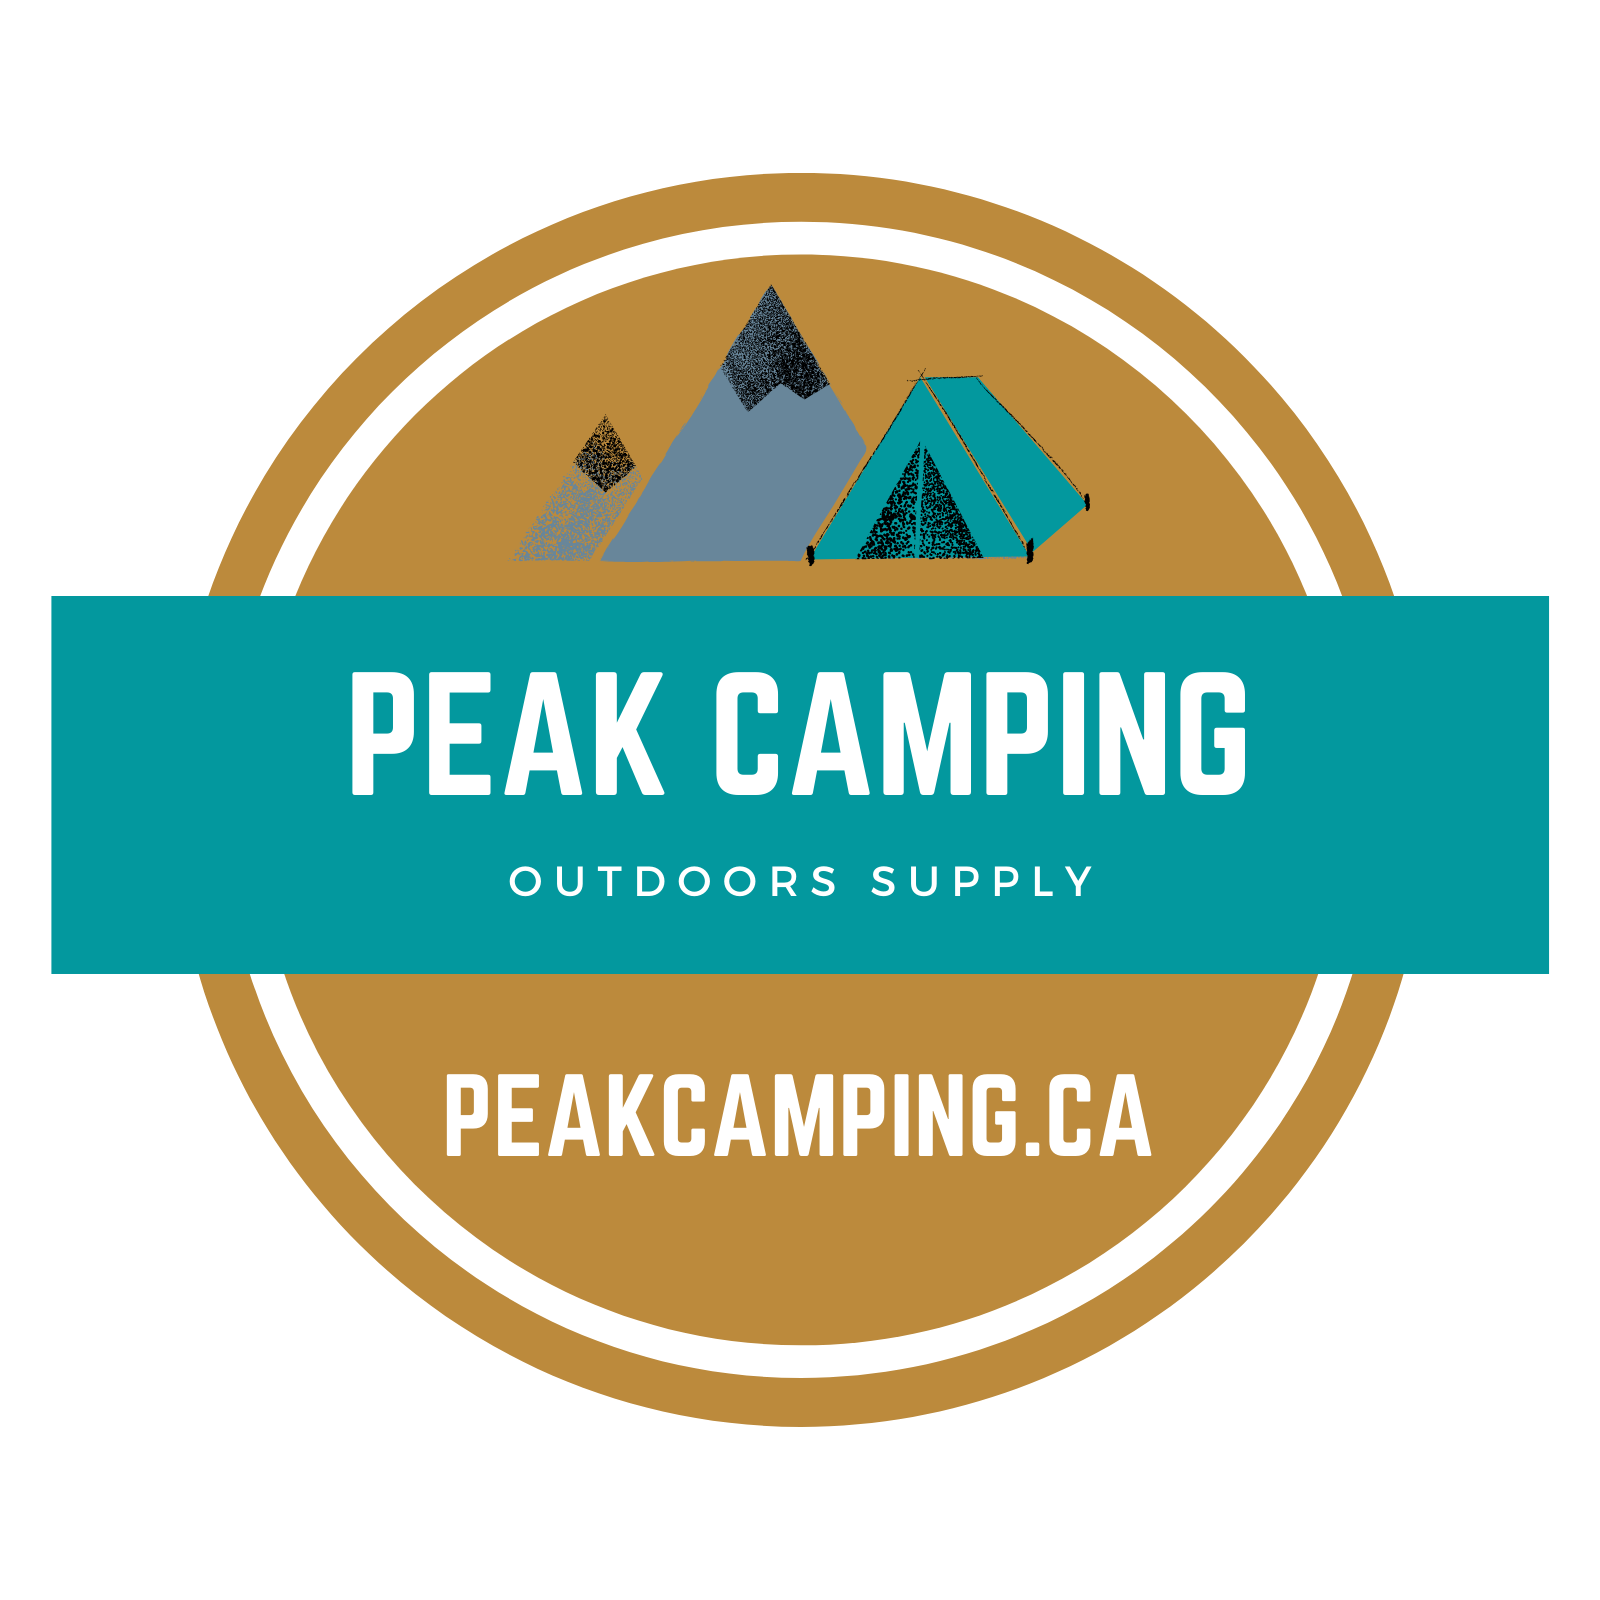 Welcome to Peak Camping!